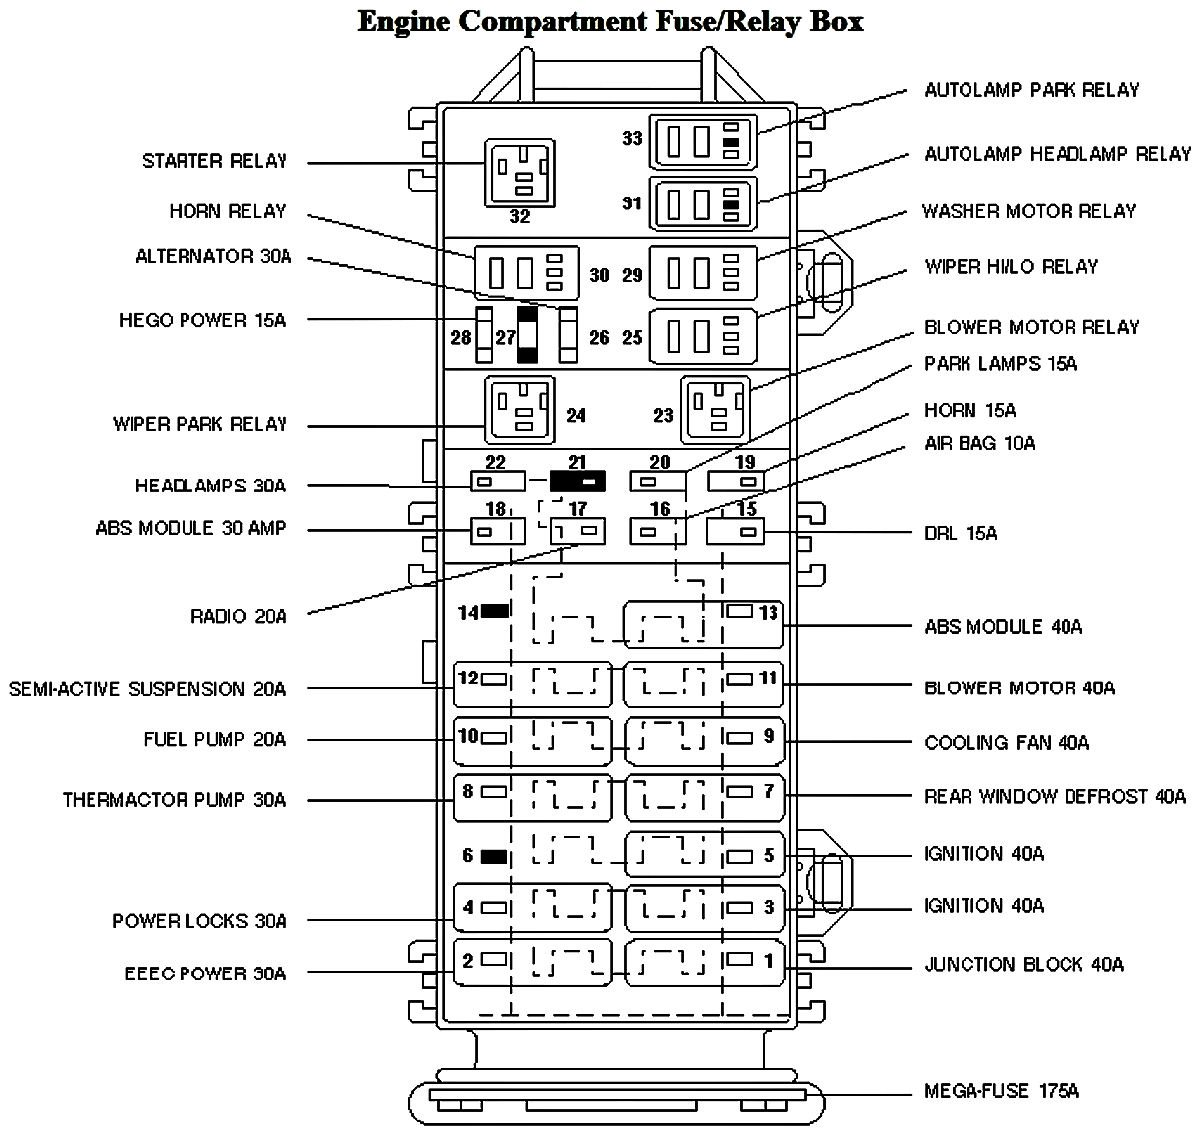 Swell Fuse Box For 2000 Mercury Cougar Wiring Library Wiring Cloud Mousmenurrecoveryedborg